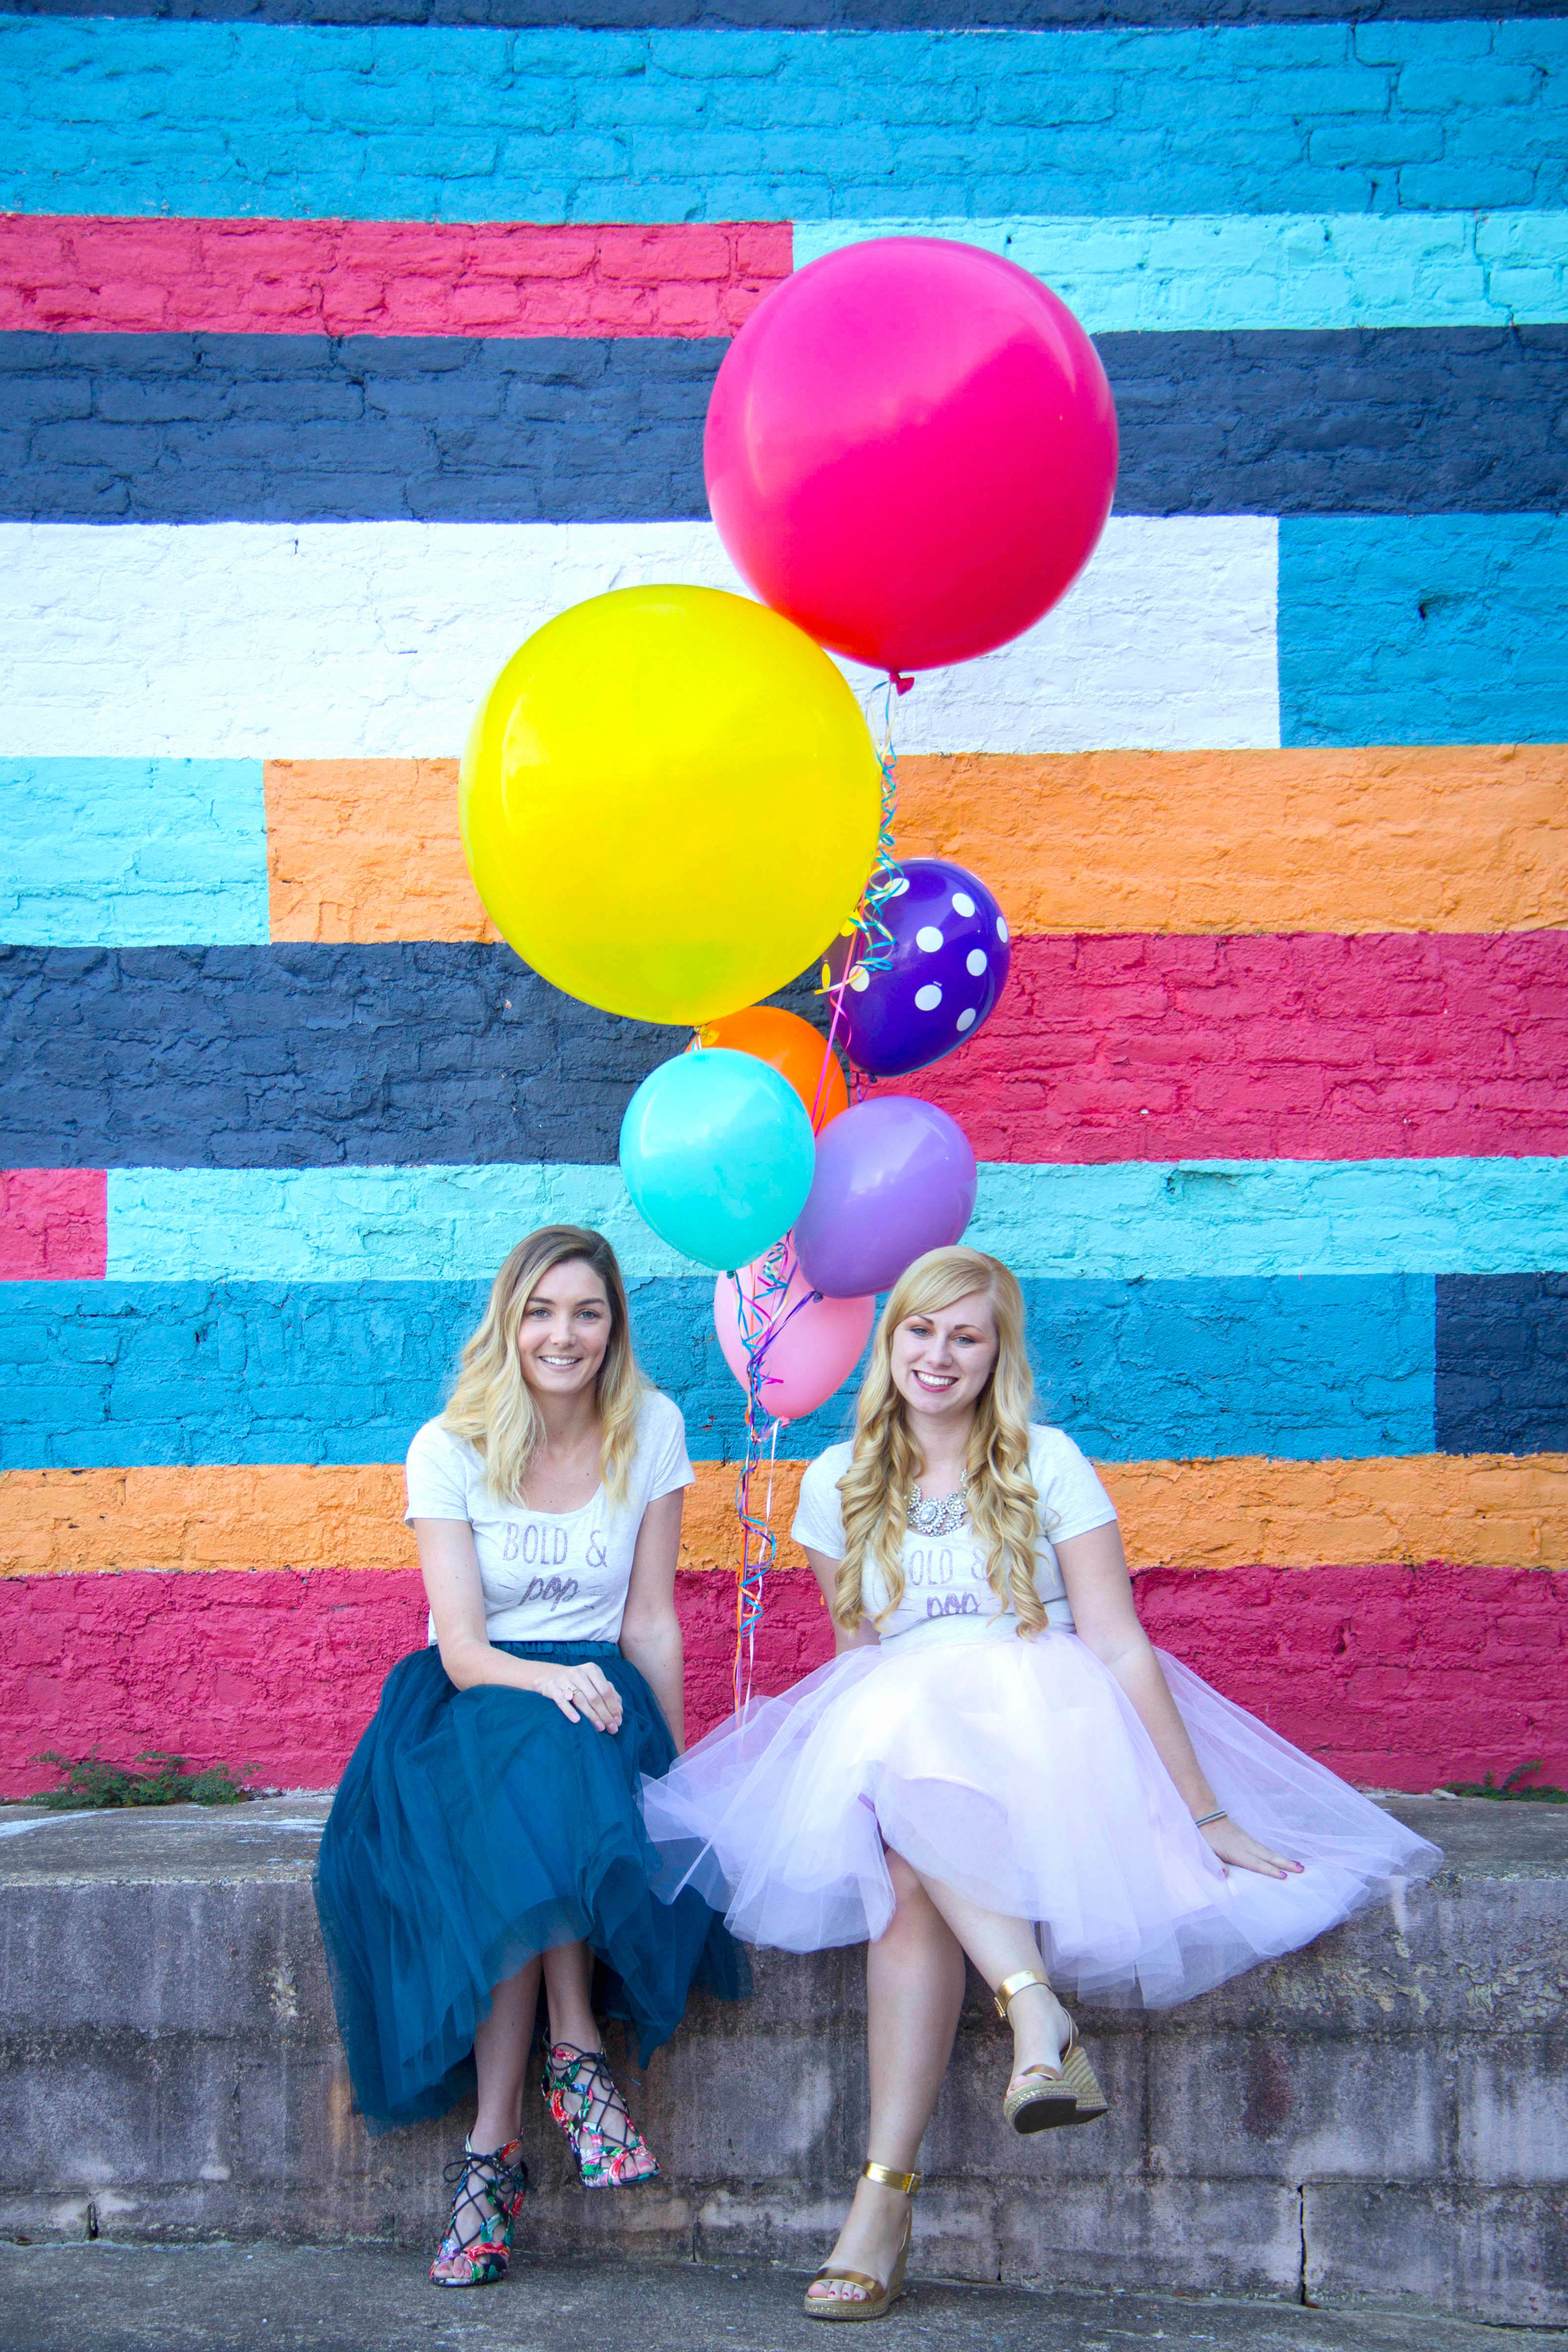 Bold & Pop : #RealTalk Q&A with Bold & Pop Co-founders on First Two Years as Full-time Biz Owners